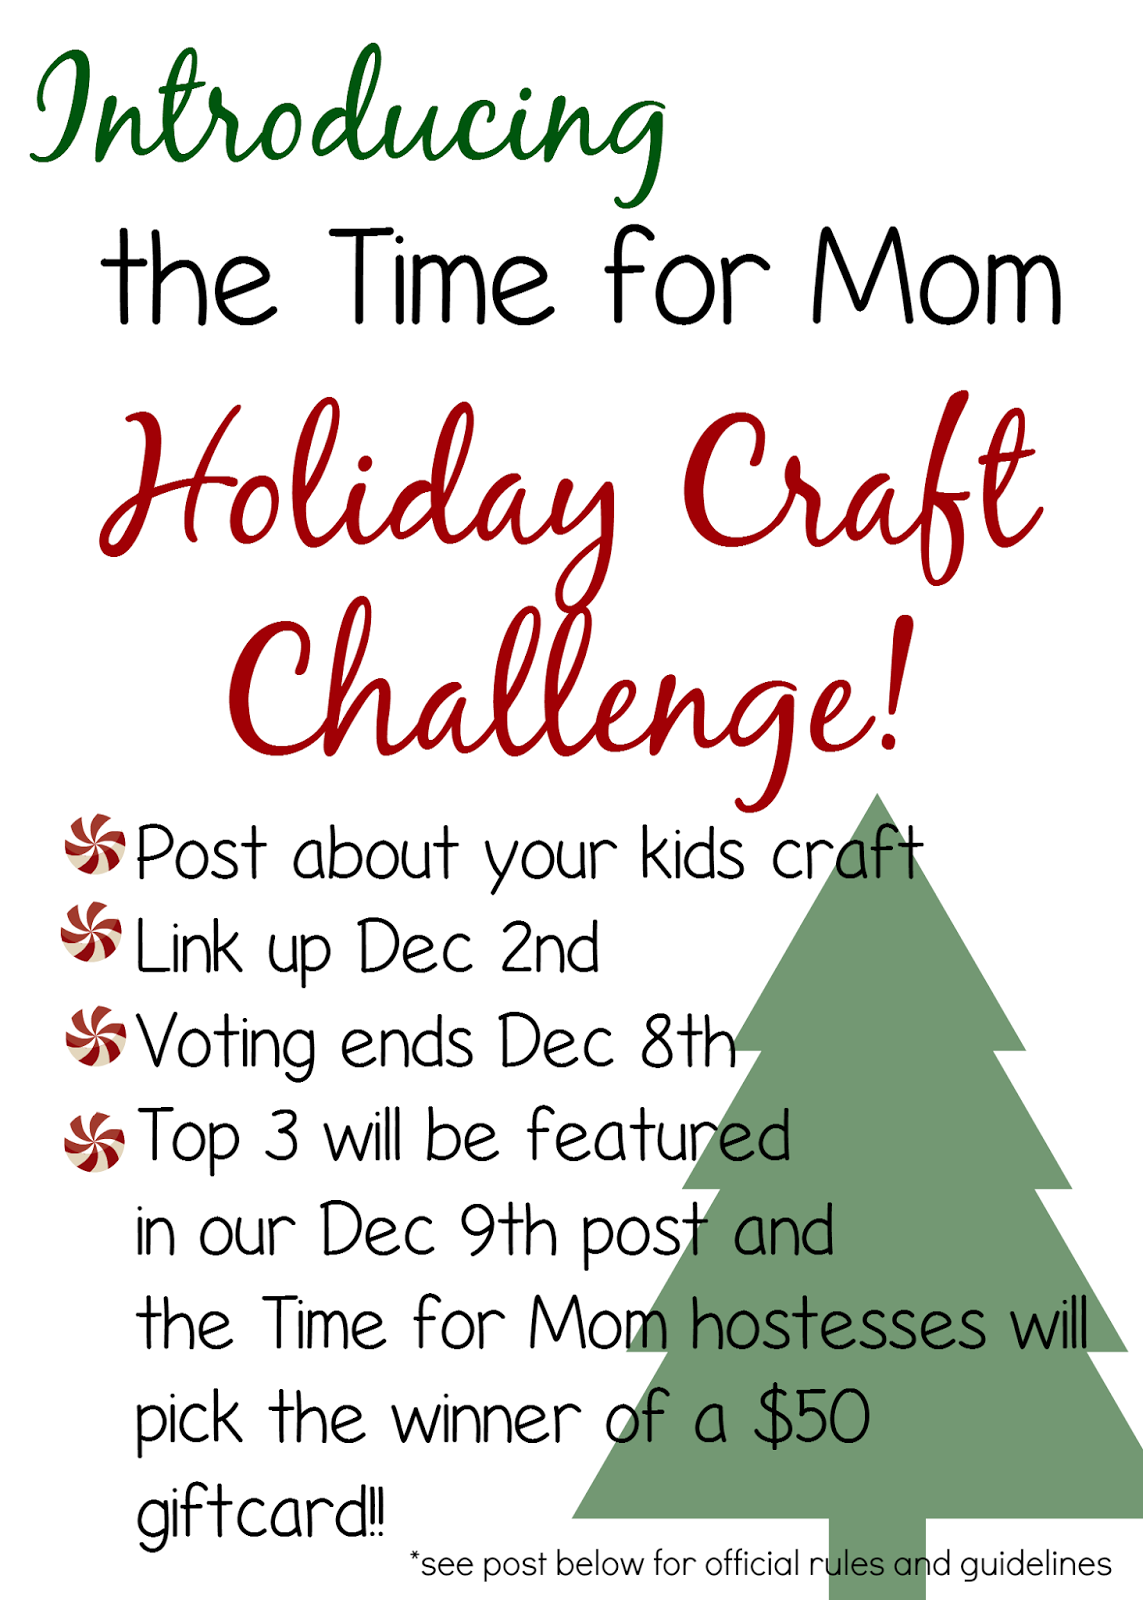 http://cantgoogleeverything.blogspot.com/2014/10/time-for-mom-holiday-craft-challenge.html